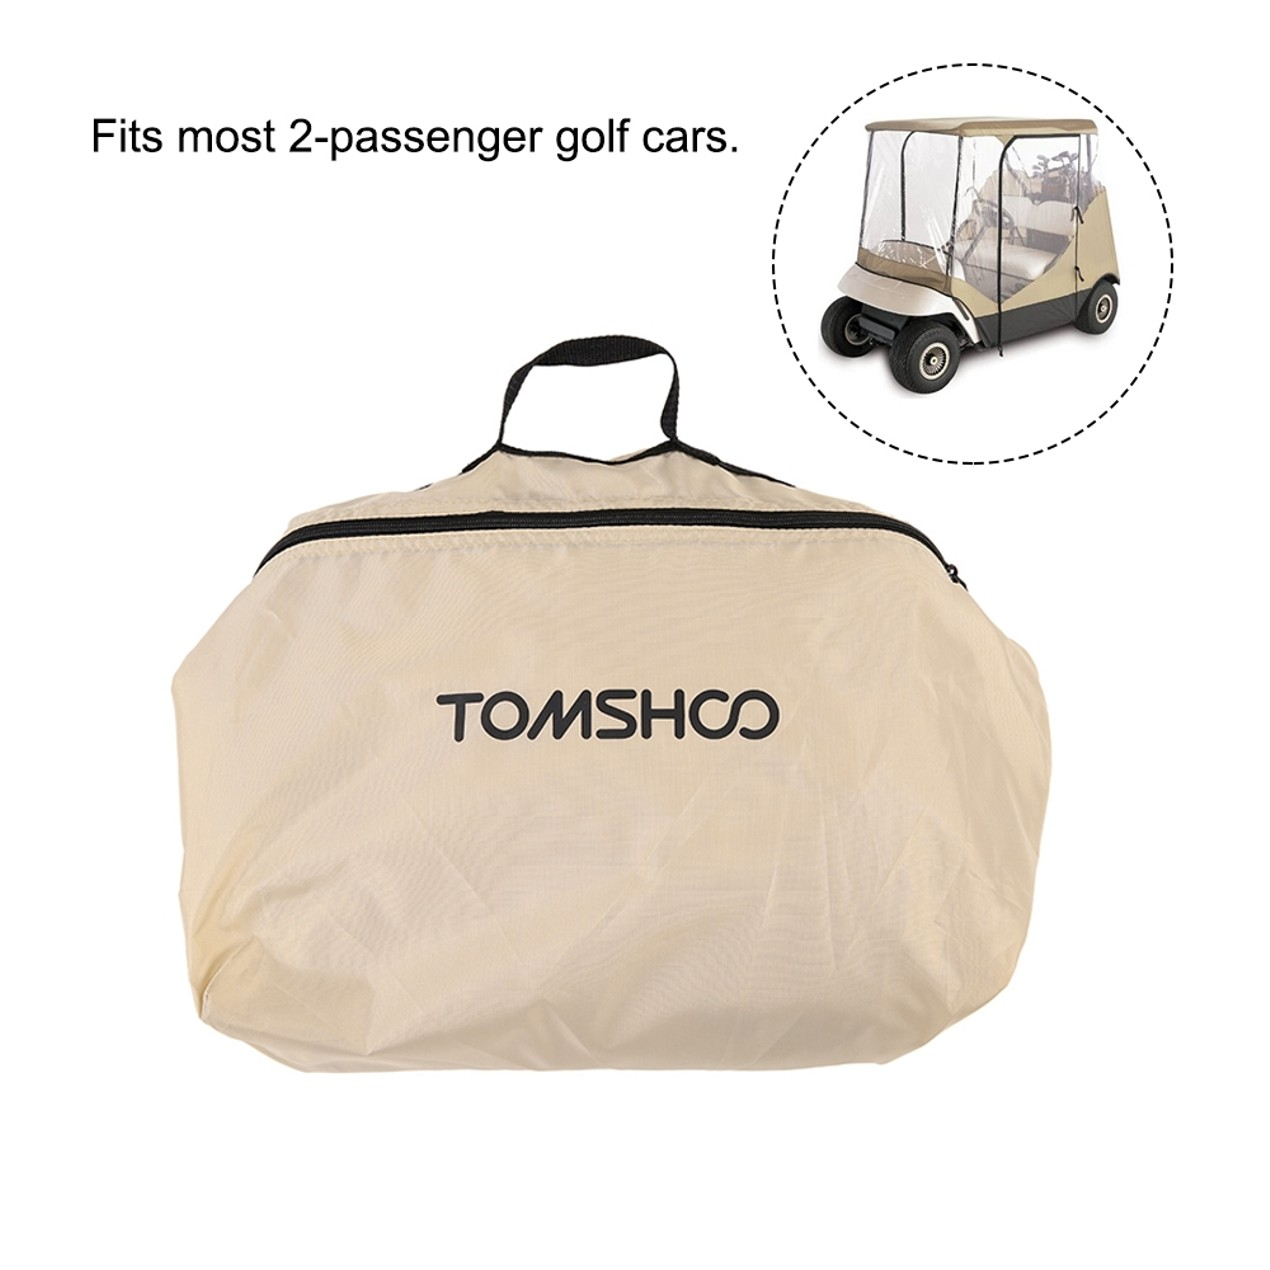 TOMSHOO 4-Sided Golf Cart Cover Enclosure for 2-Person